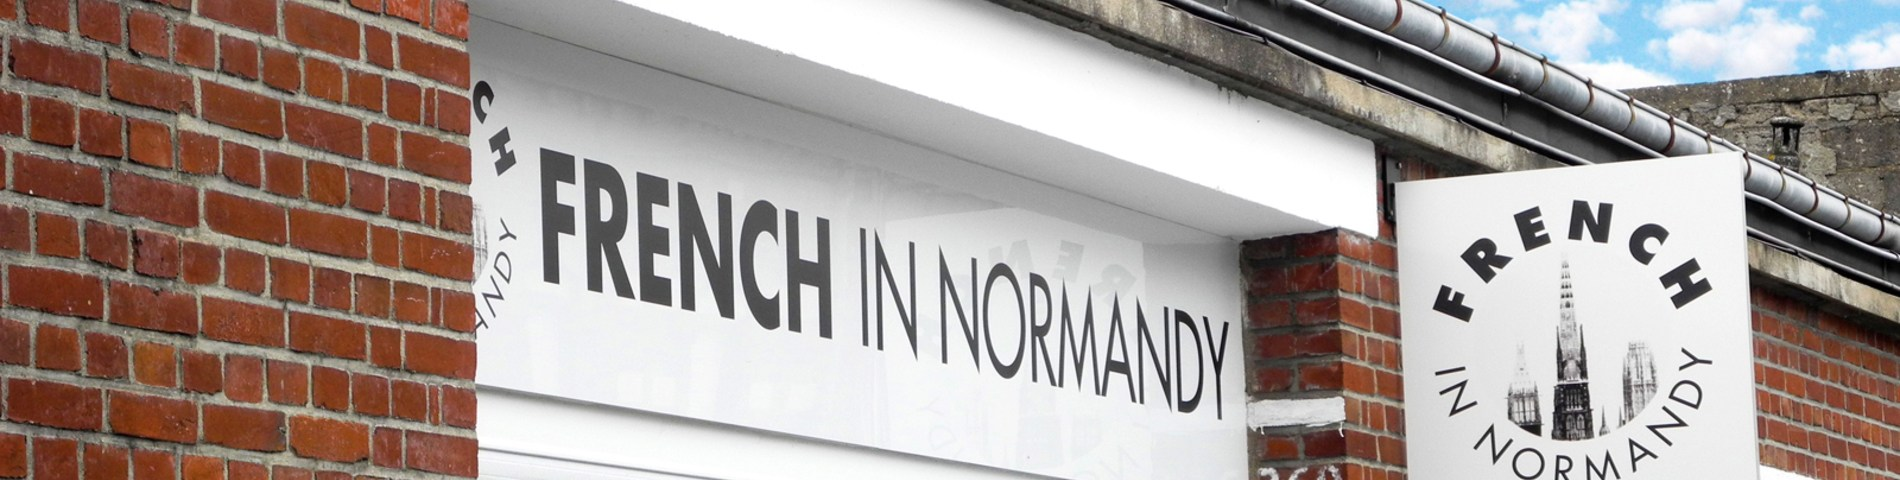 French in Normandy kép 2